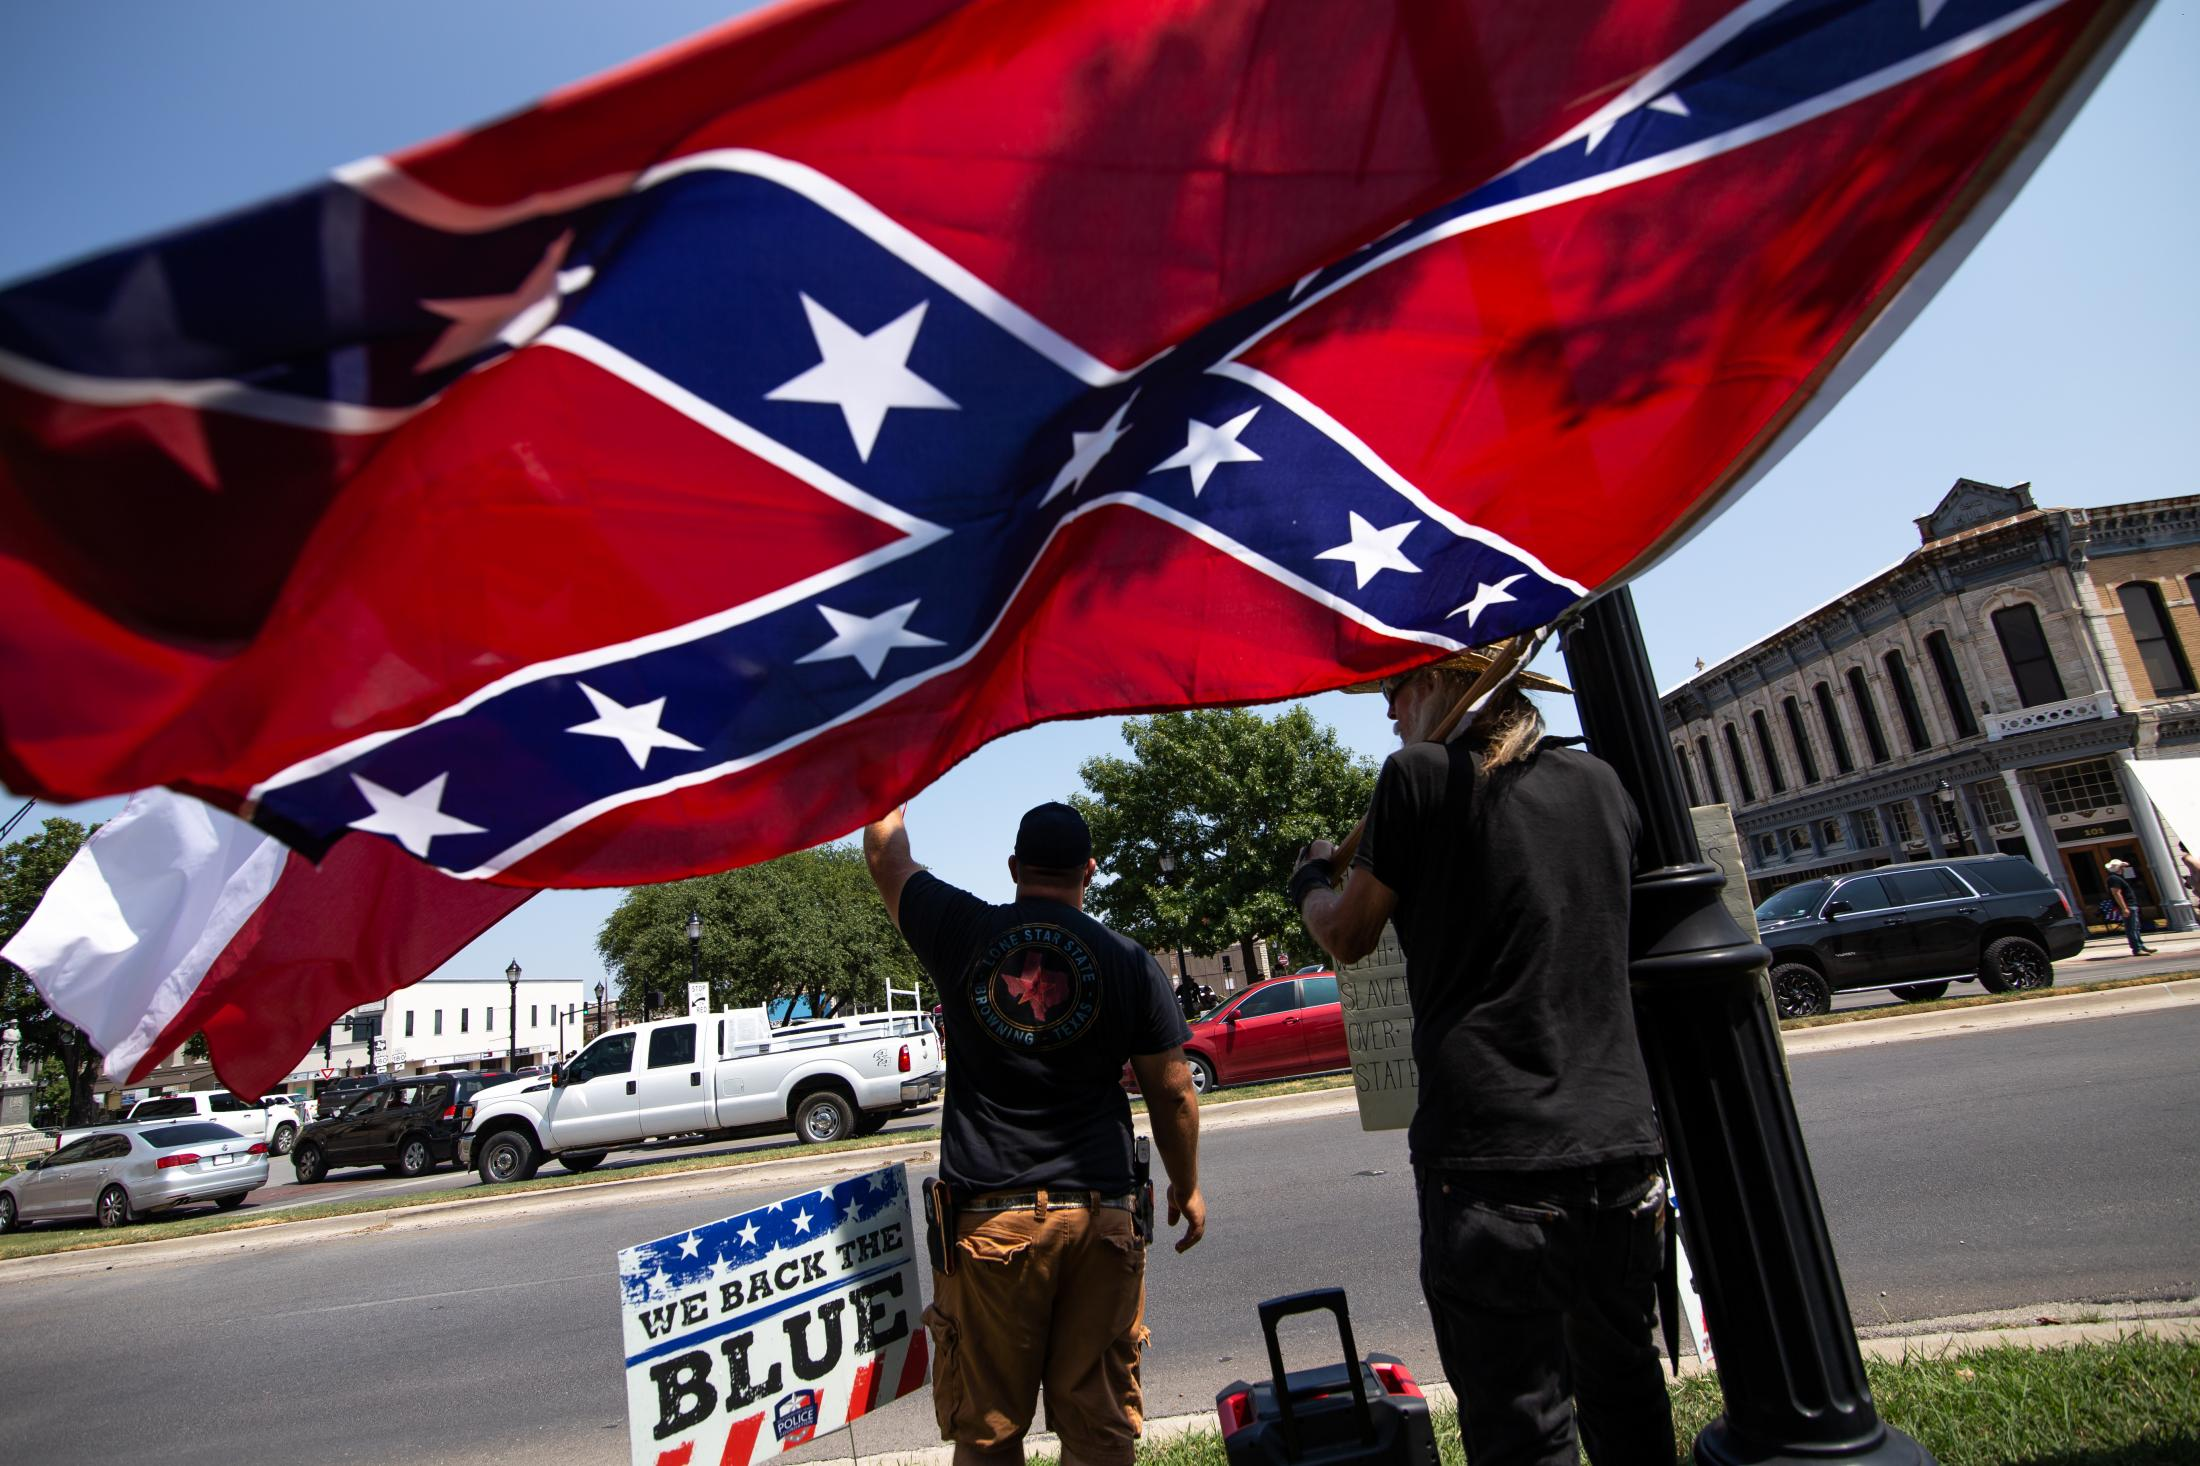 During a demonstration of the Weatherford Confederate monument, that was voted by the city council to not remove from the city courthouse grounds, supporters wave a Confederate flag on the city courthouse's street curb. Motorists drive by and honk at the protestors.